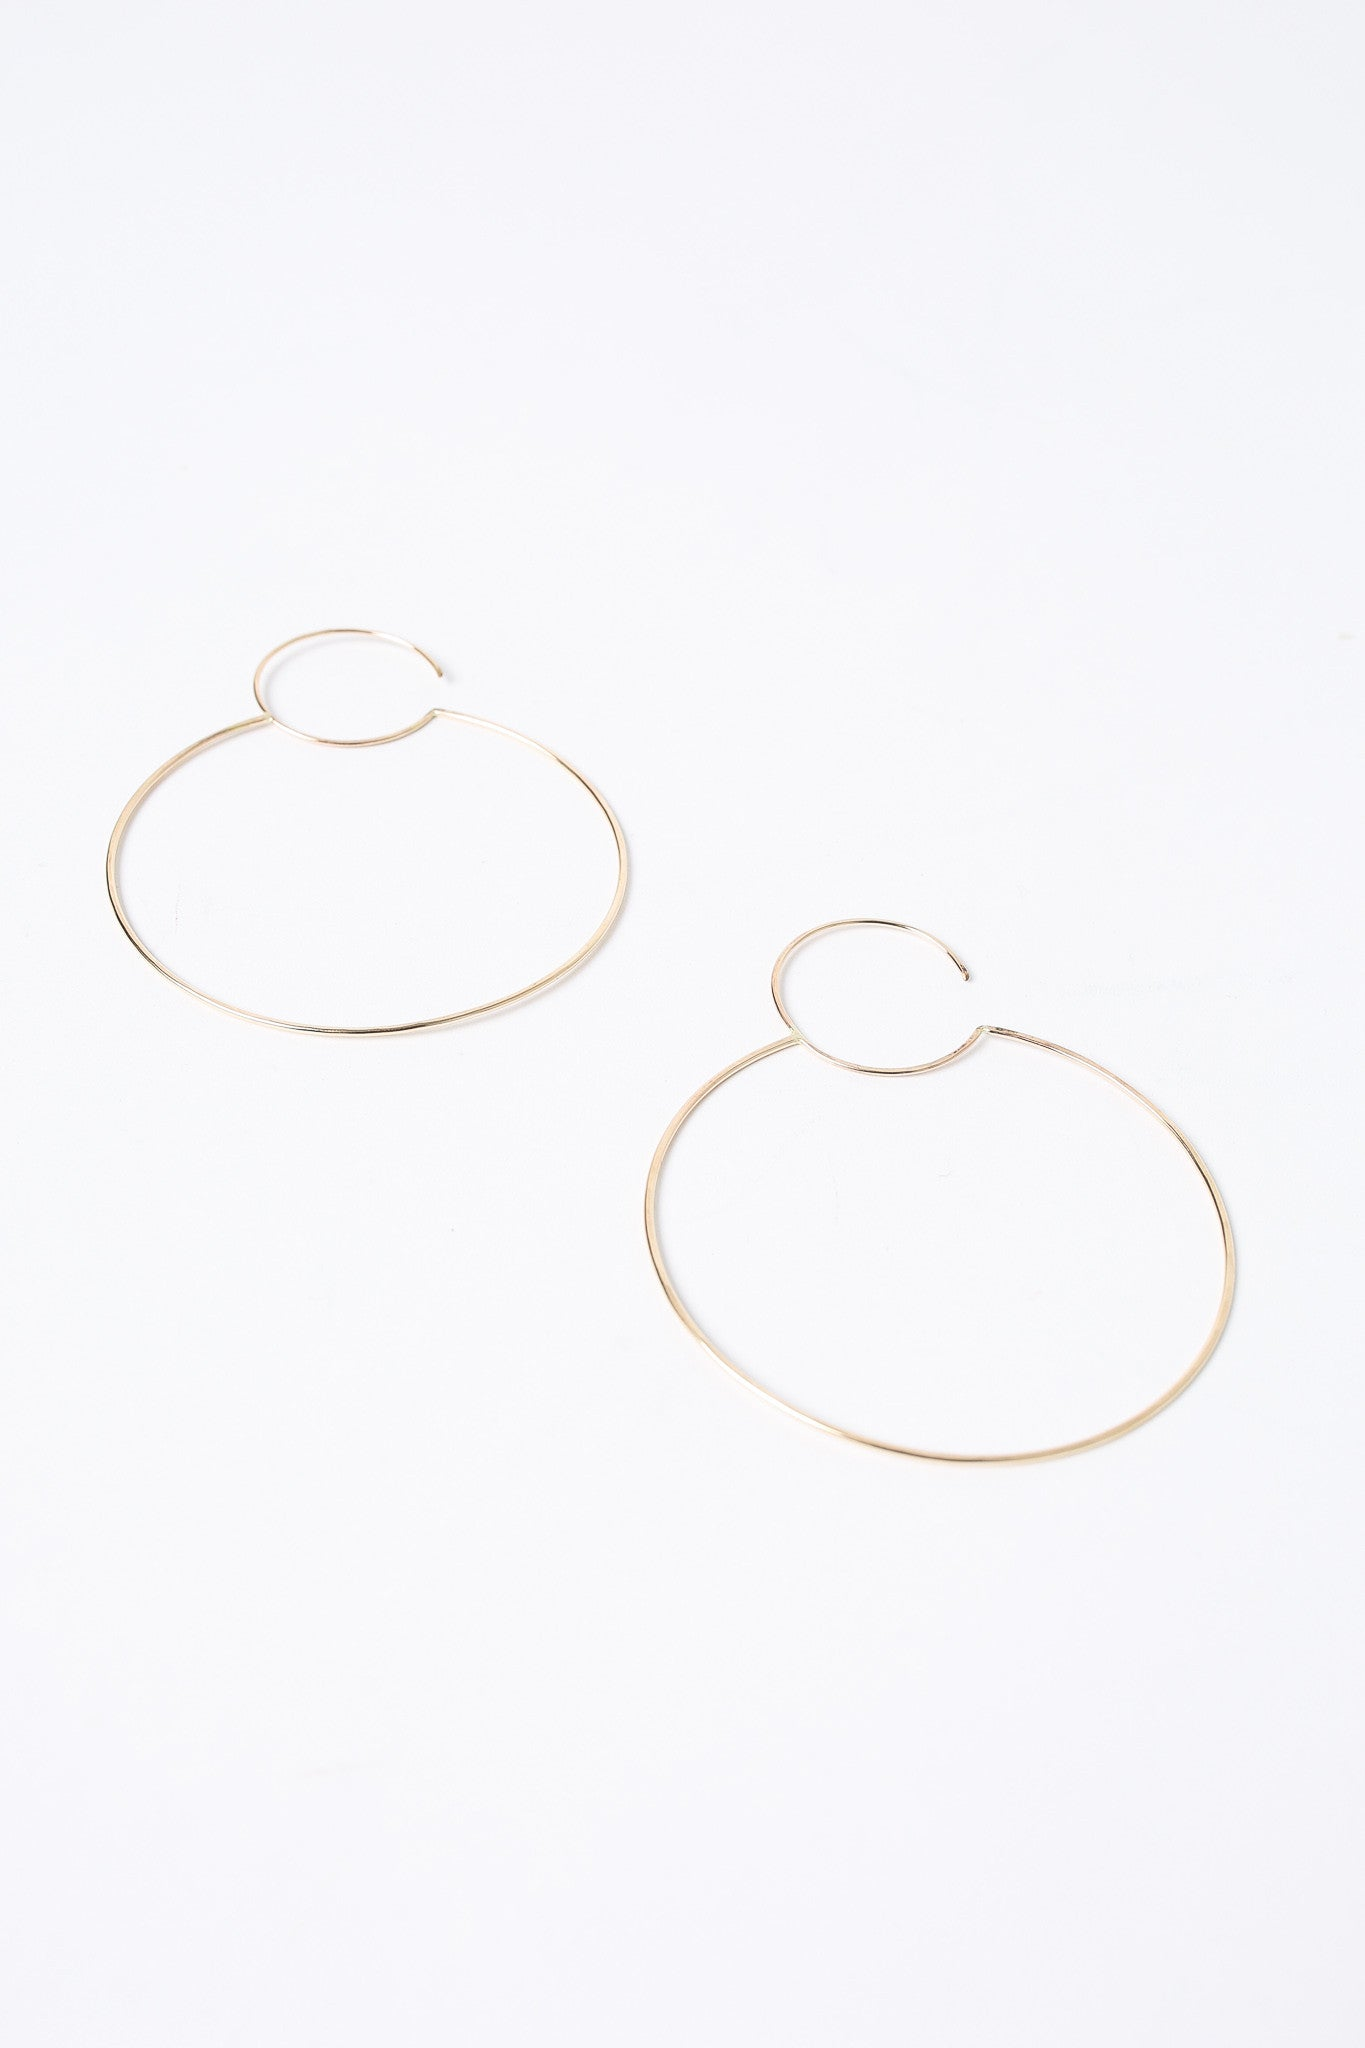 S Tector Metals Large round hoop earrings - Vert & Vogue